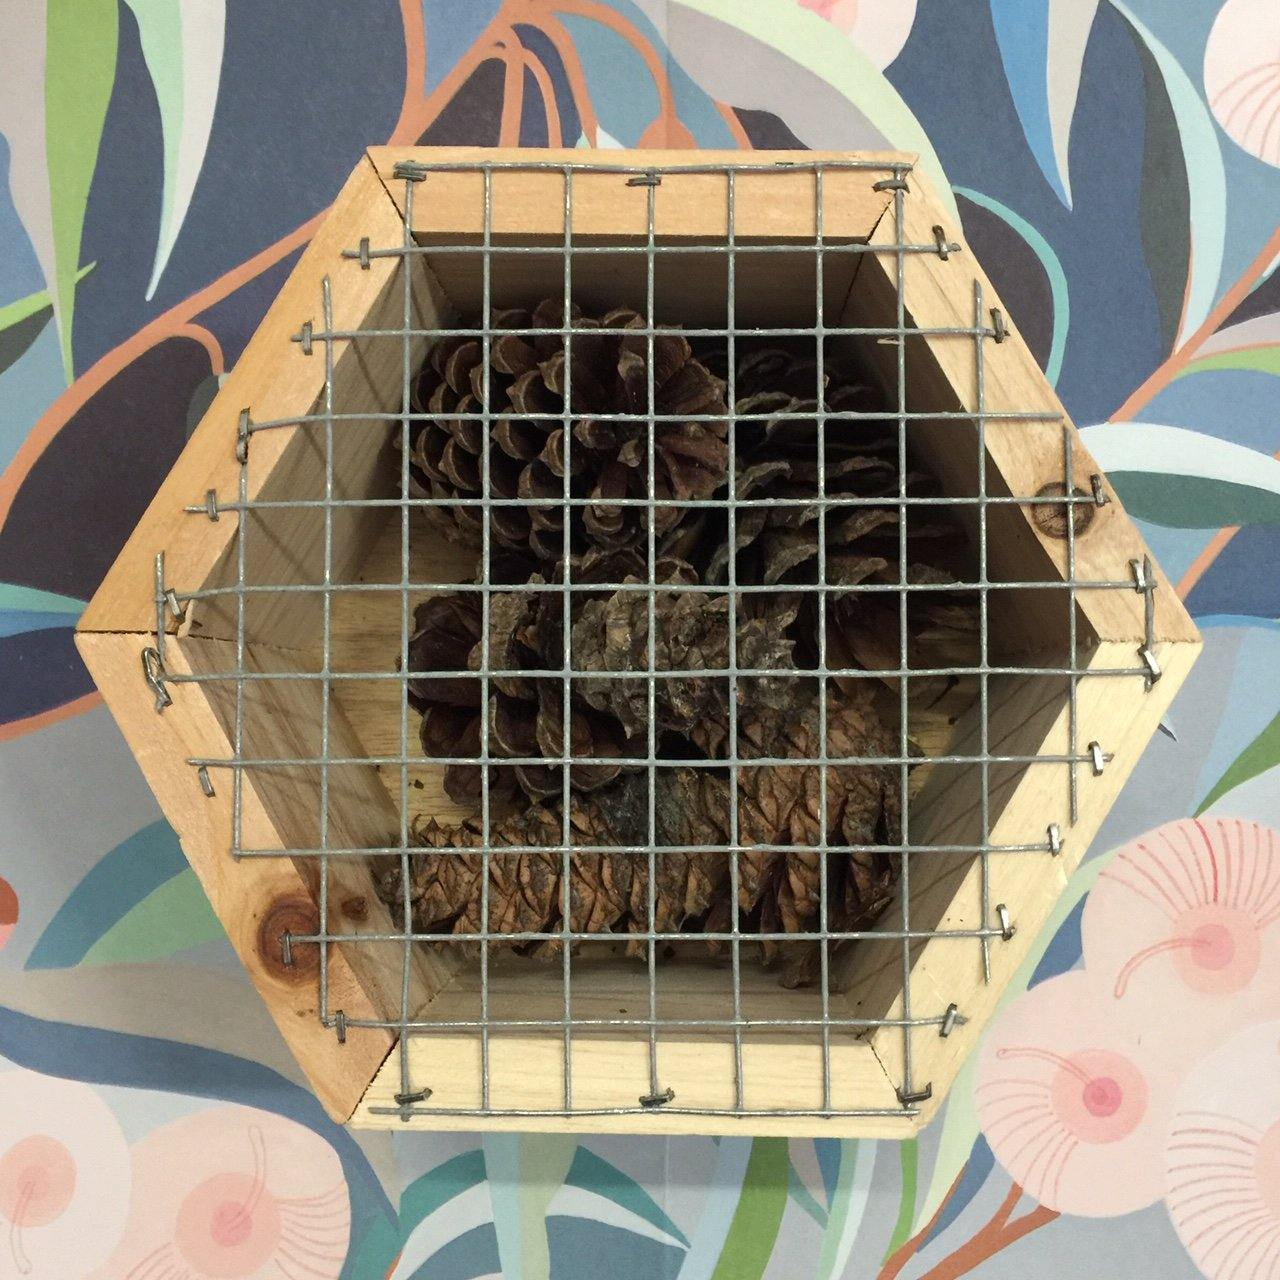 Hexagonal Insect Hotel with Pinecones - Front view